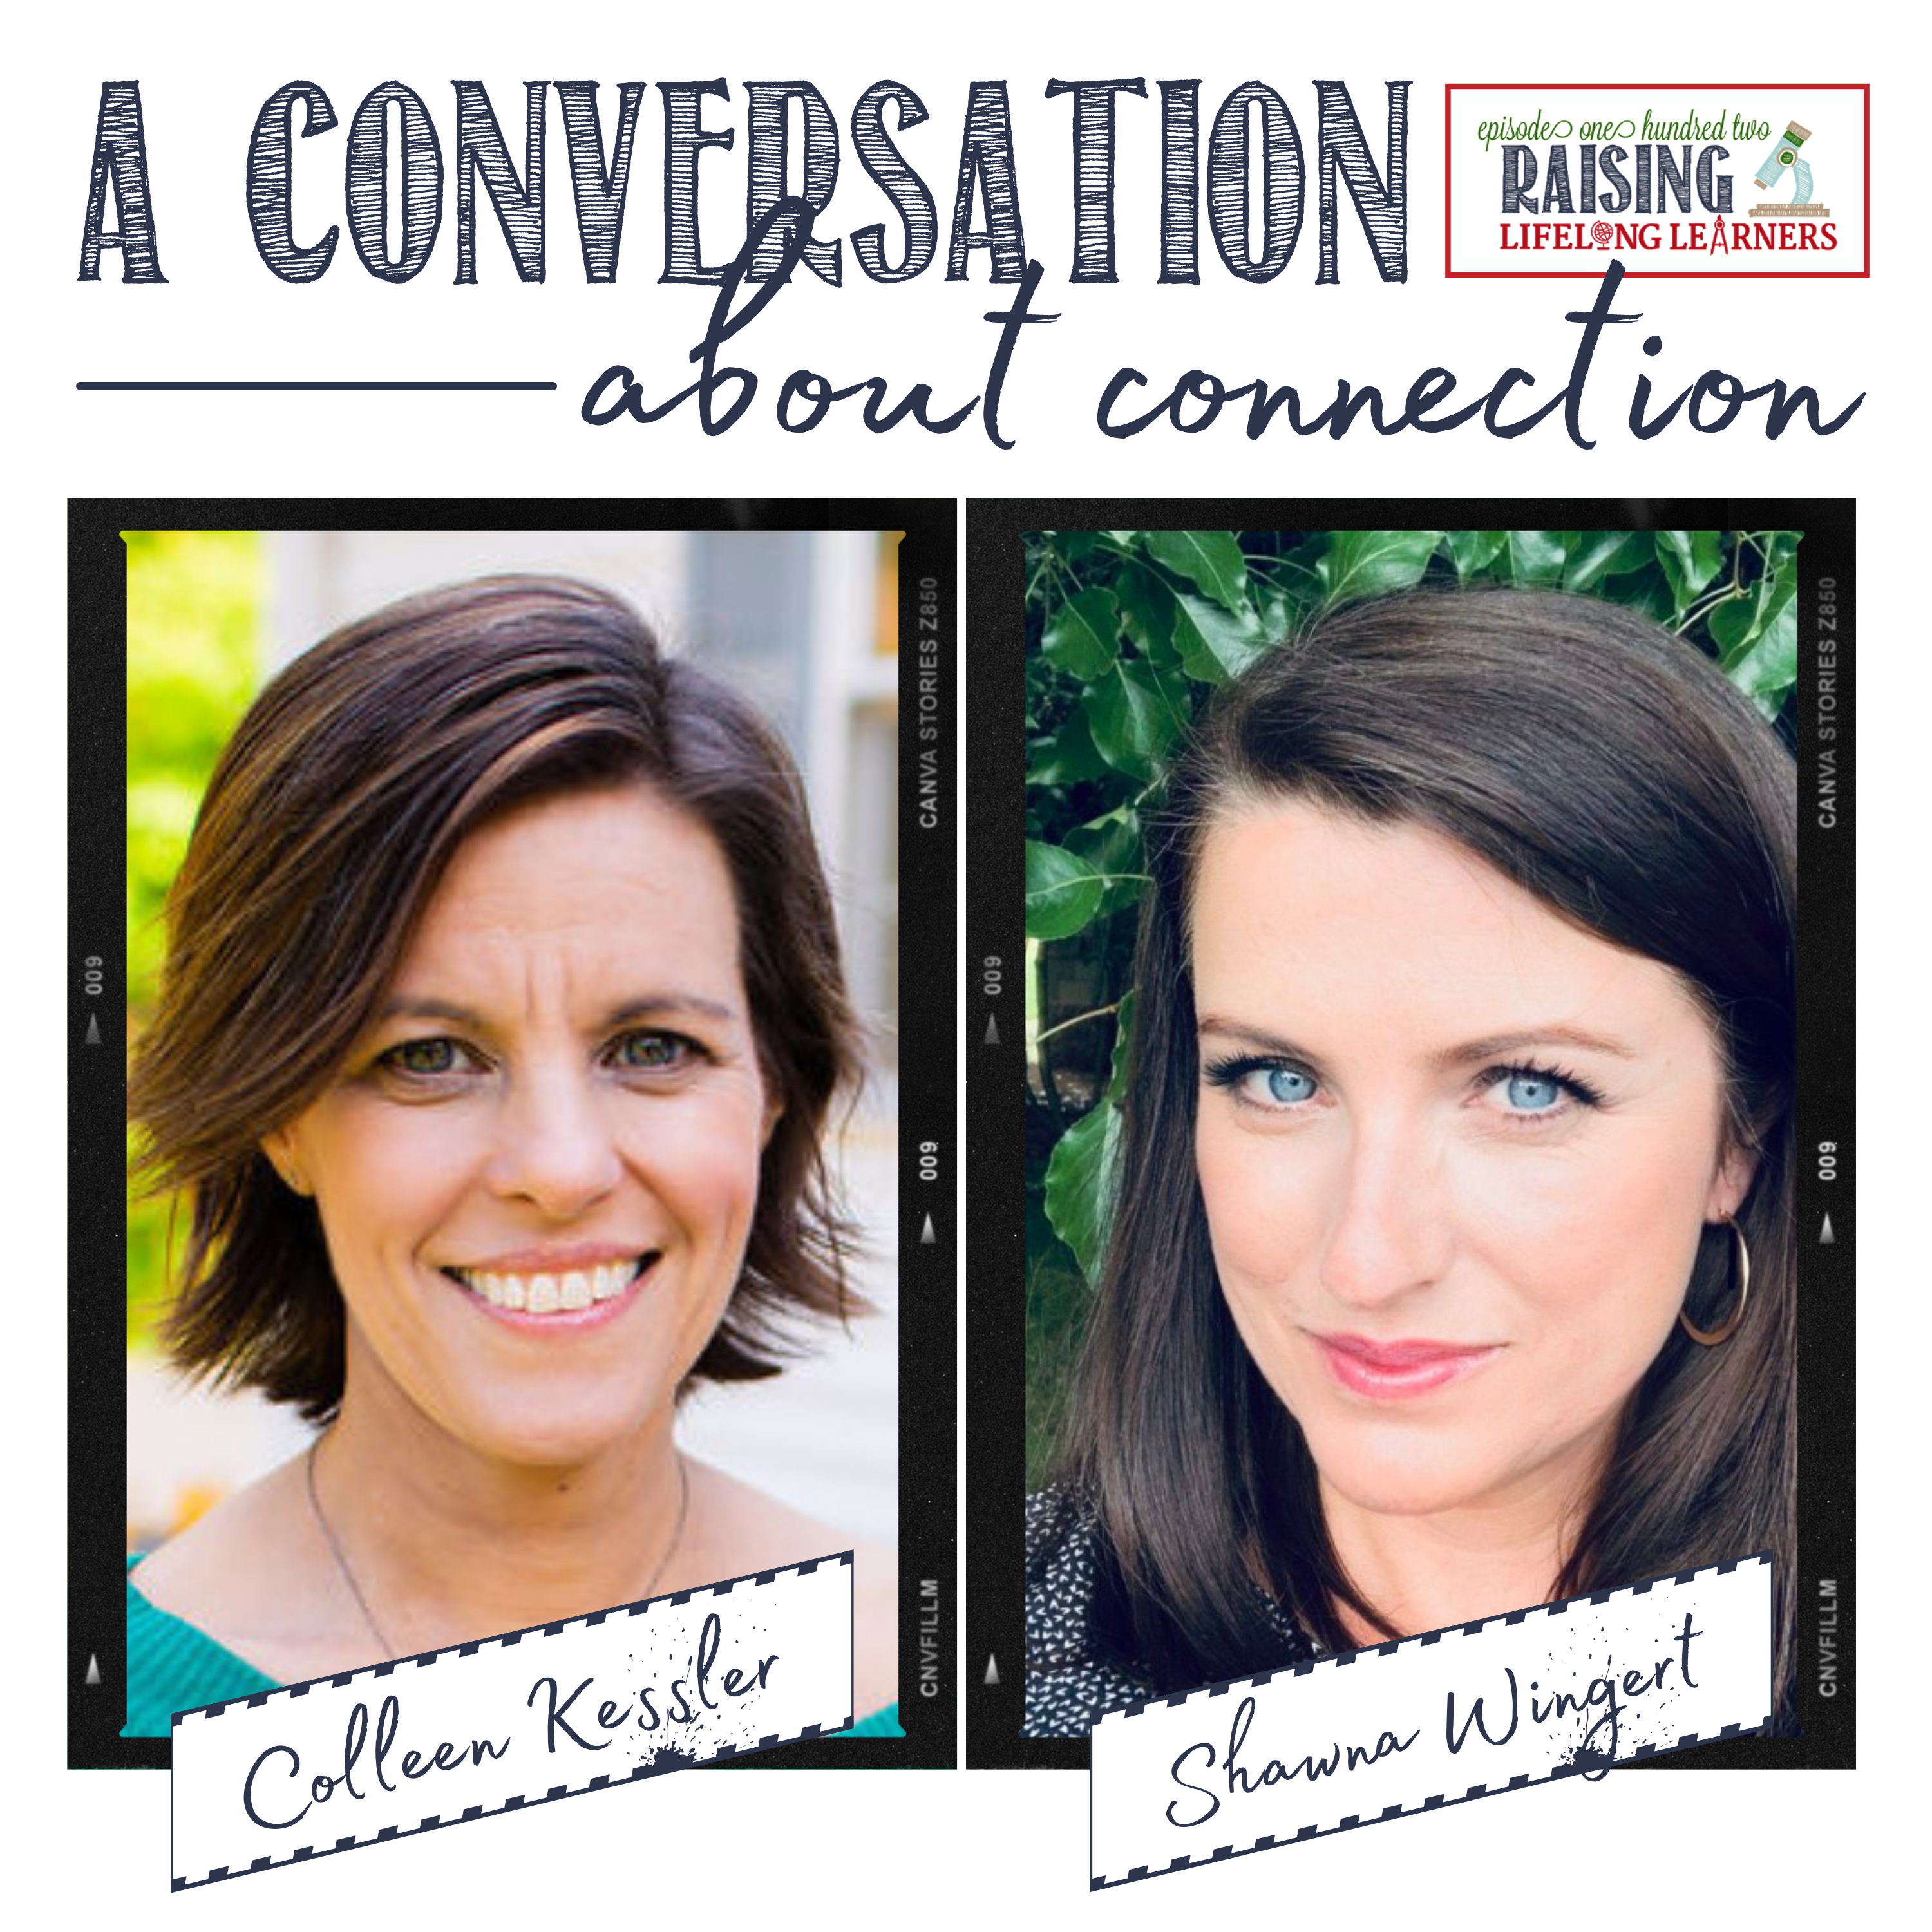 RLL #102: A Conversation about Connection with Shawna Wingert